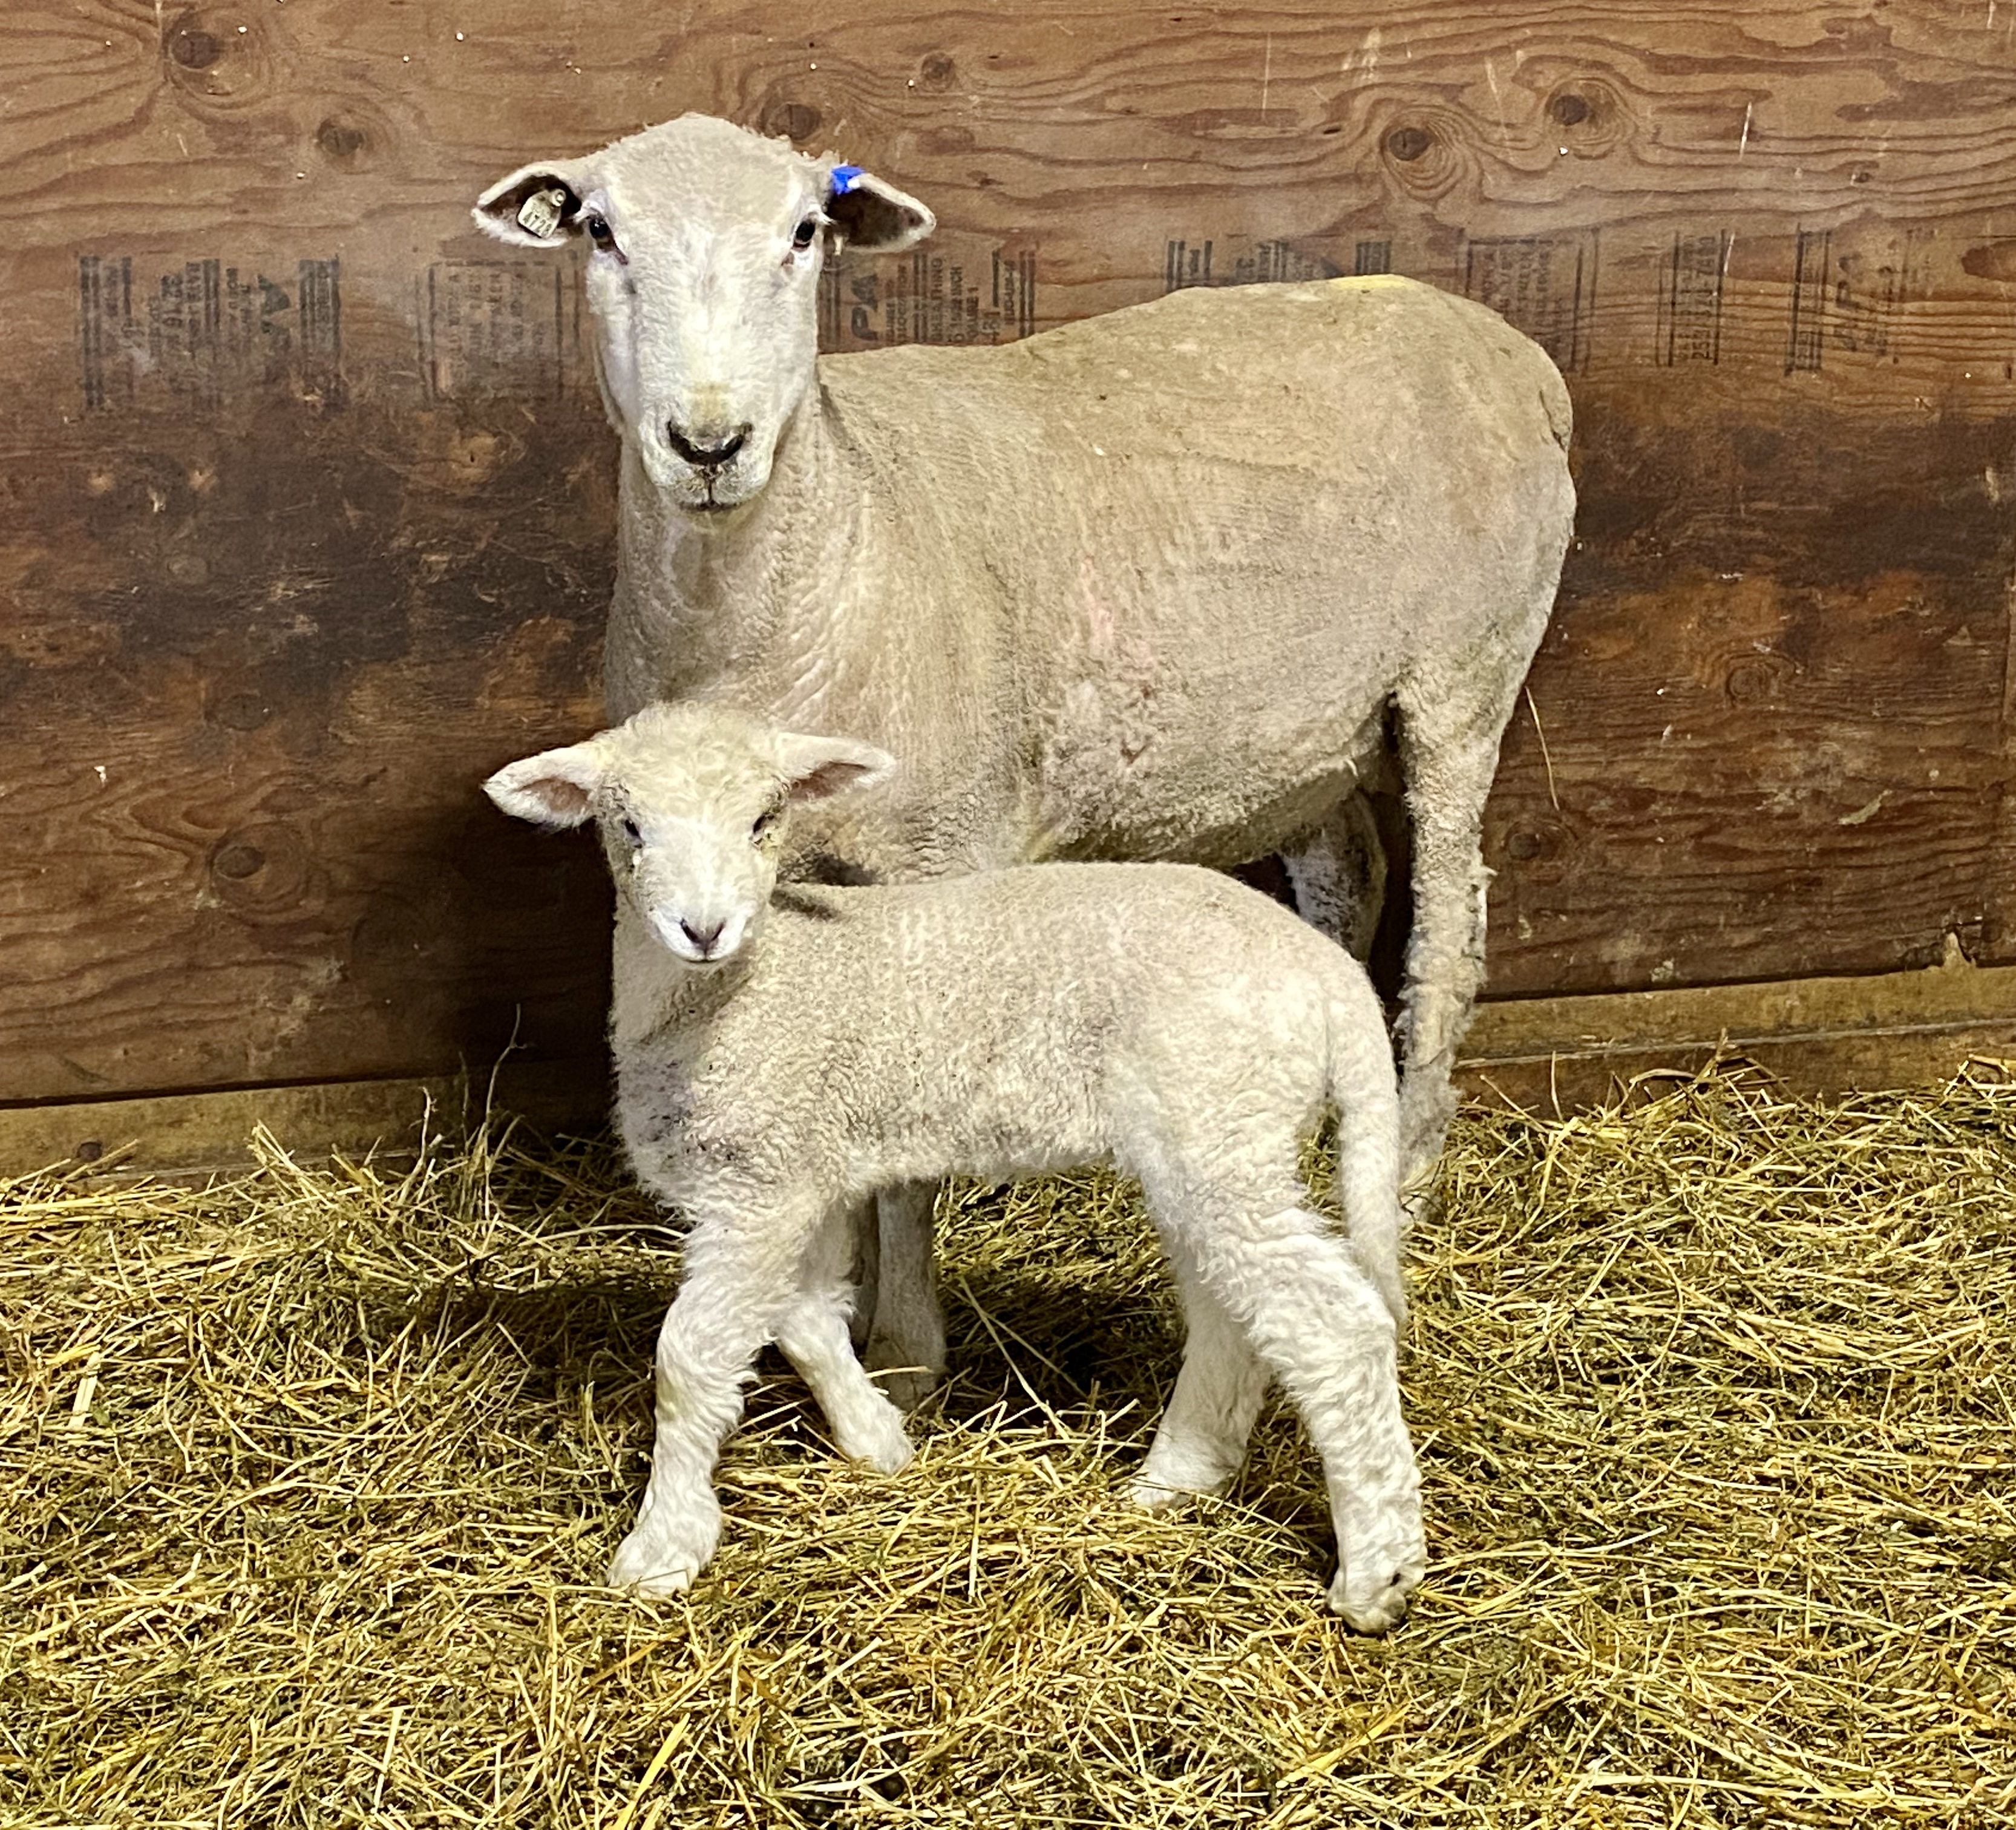 Sheep, lamb and wool industry updates will be among the topics covered during the joint North Dakota/Minnesota sheep convention. (NDSU photo)